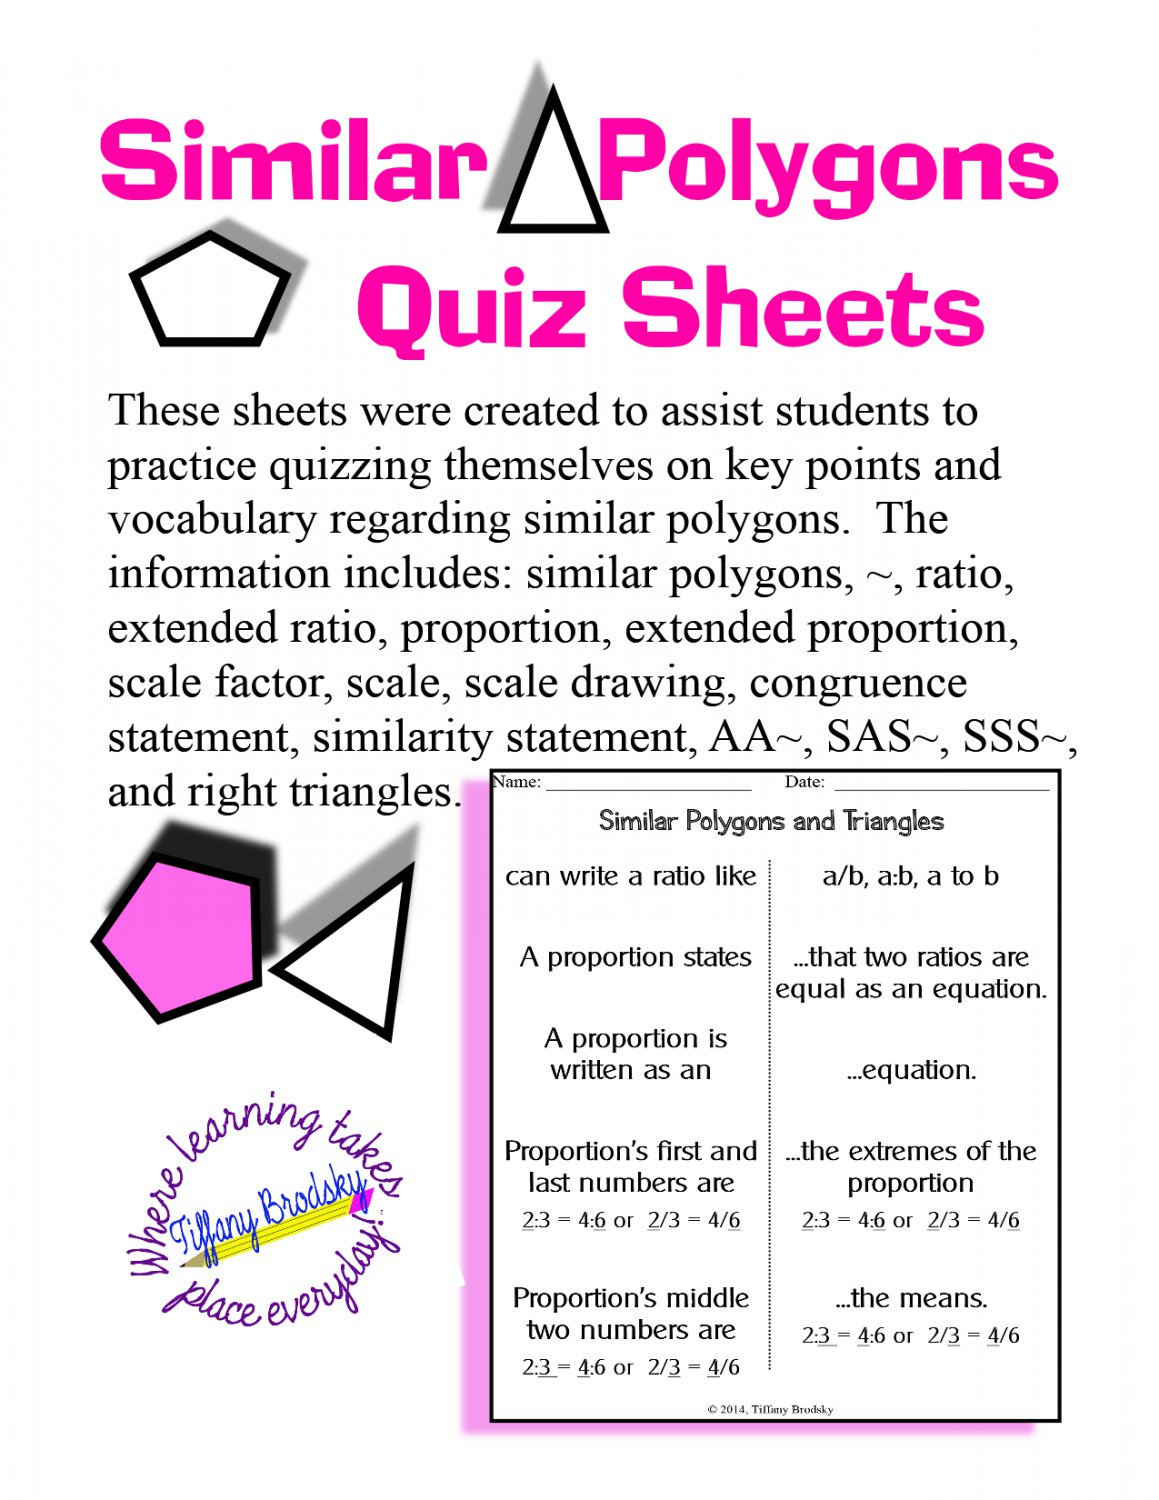 Similar Polygons And Triangles Self Quiz Sheets For